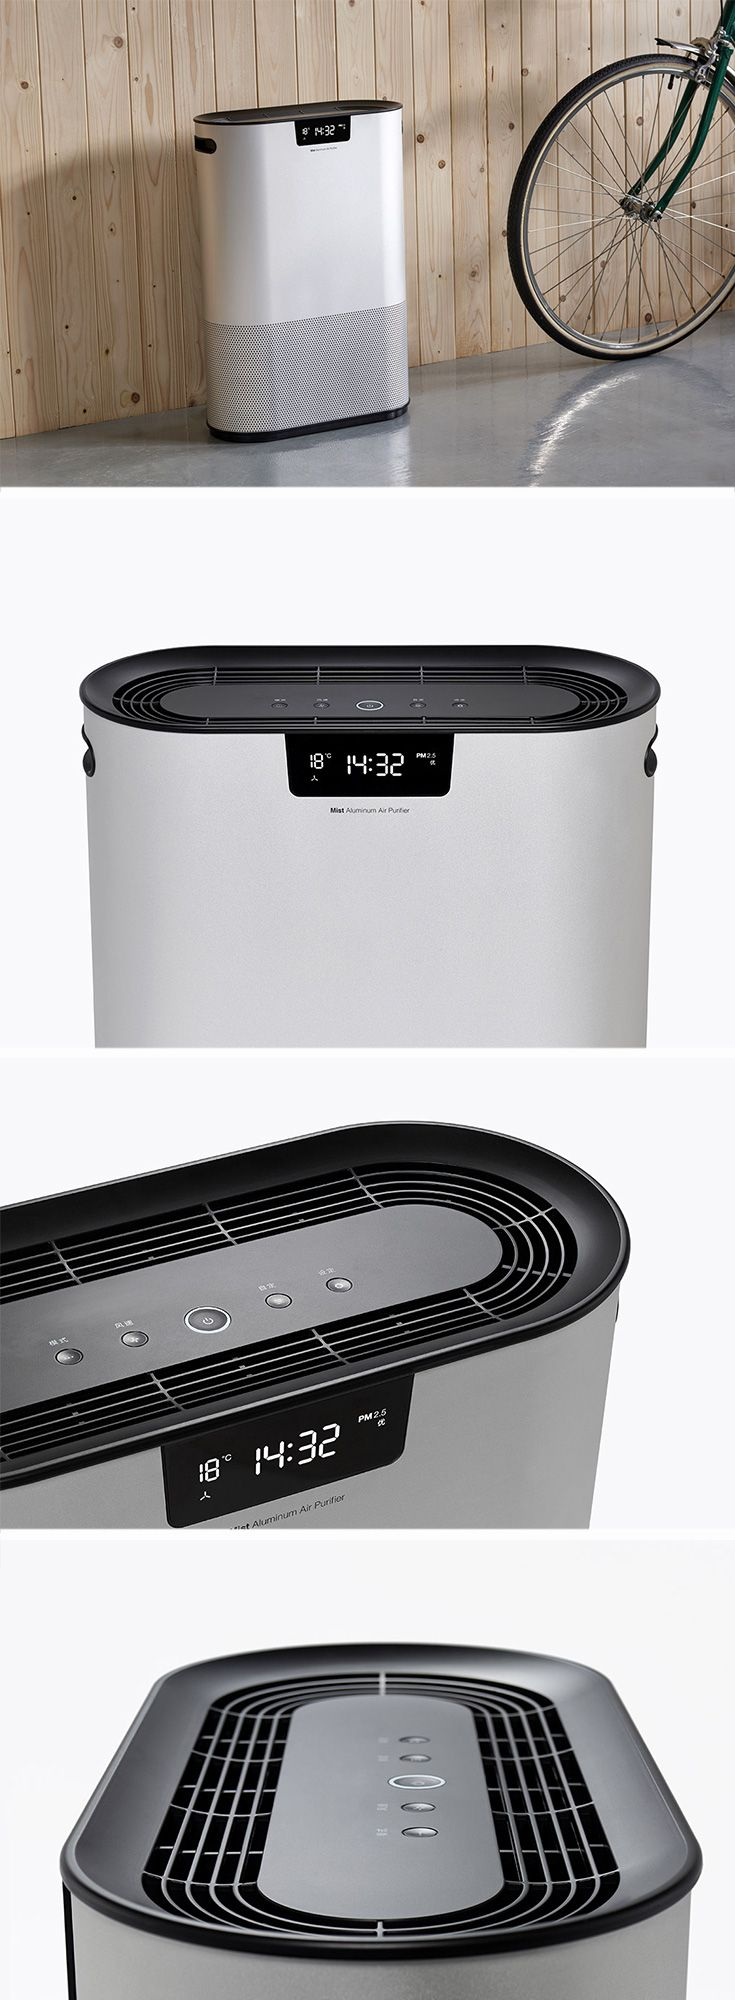 Made from a single, seamless piece of satin nickel aluminum, mist is a high-end air purifier with a minimalist outside and sophisticated inside.